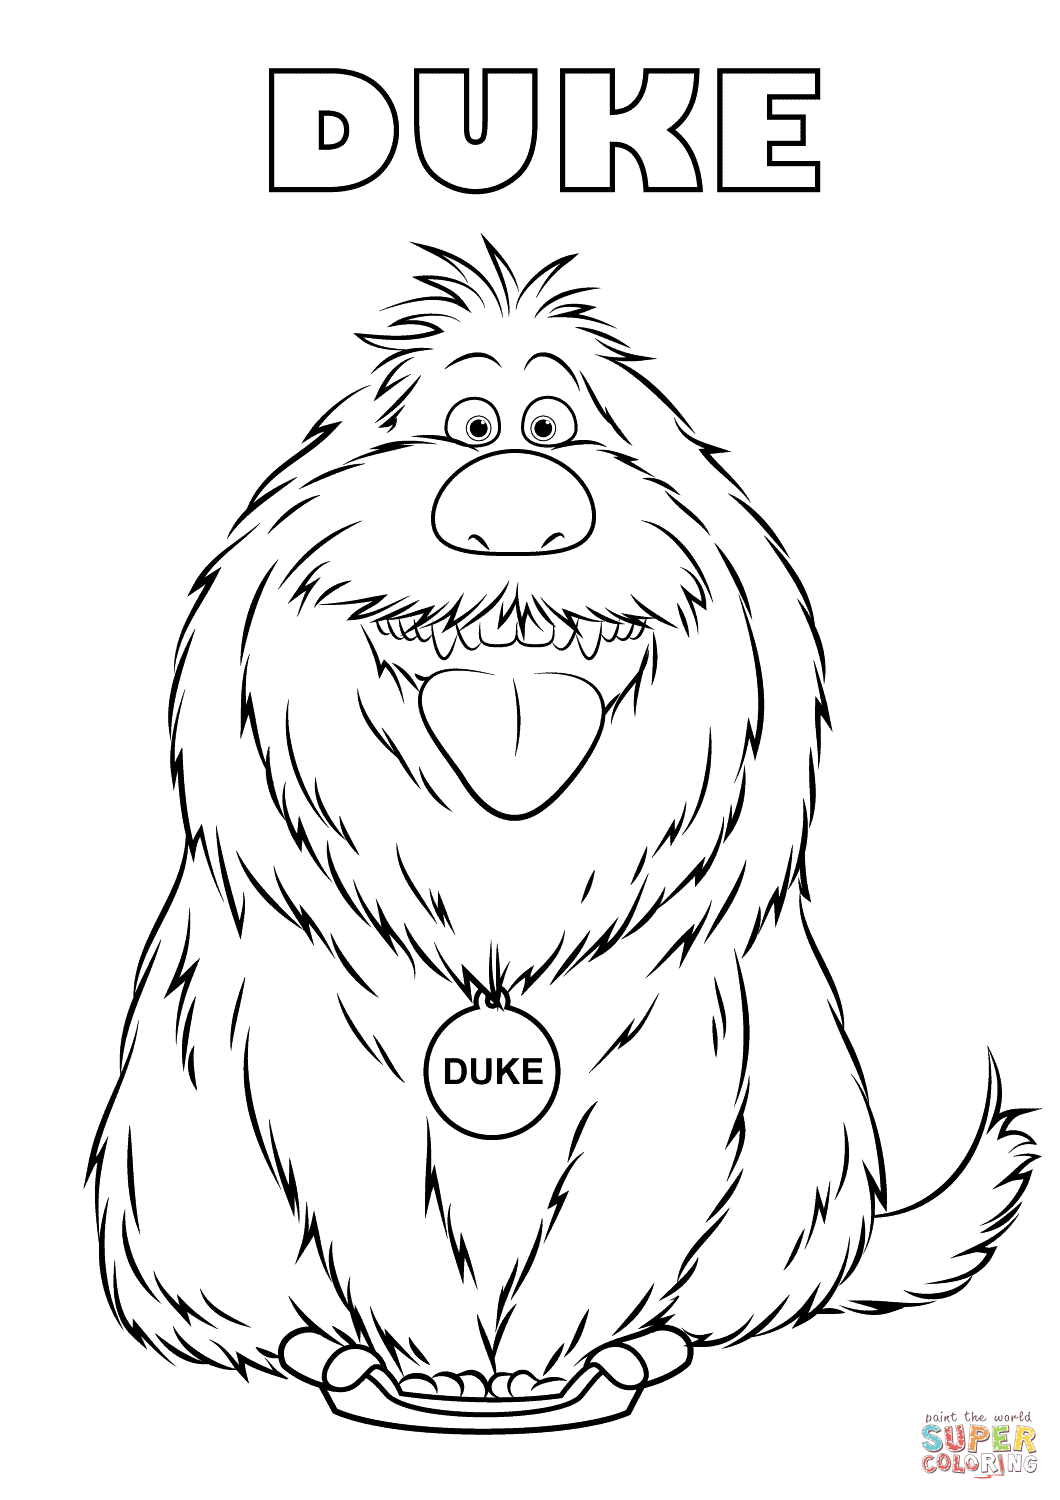 Duke From The Secret Life Of Pets Coloring Page